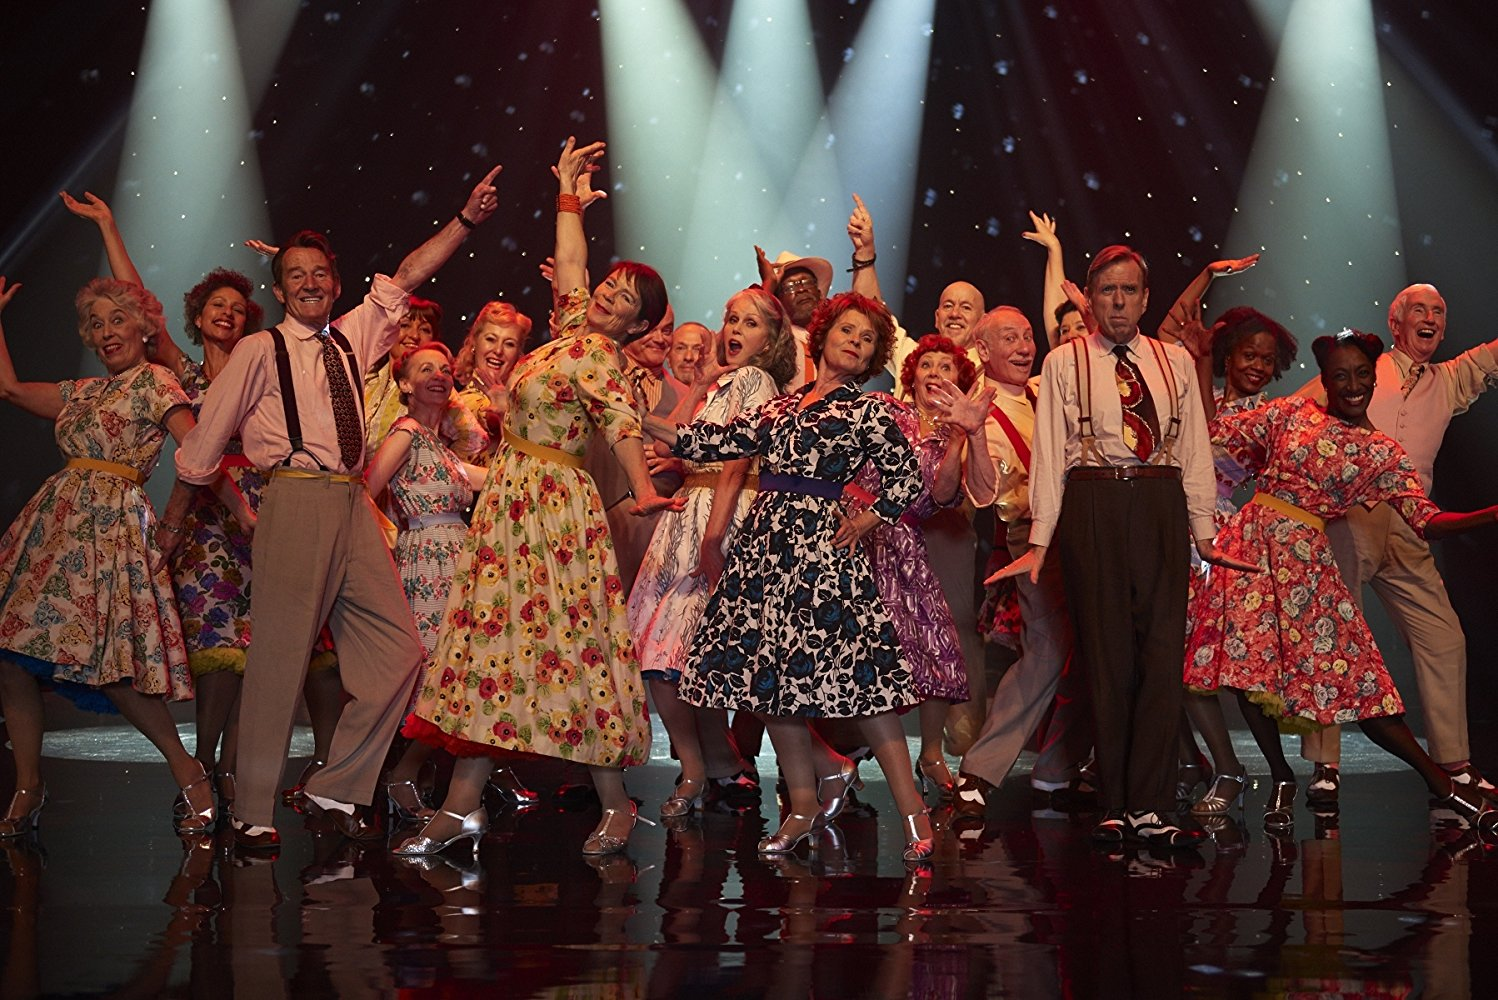 Crítica: Acertando o Passo (Finding Your Feet, Reino Unido, 2018)